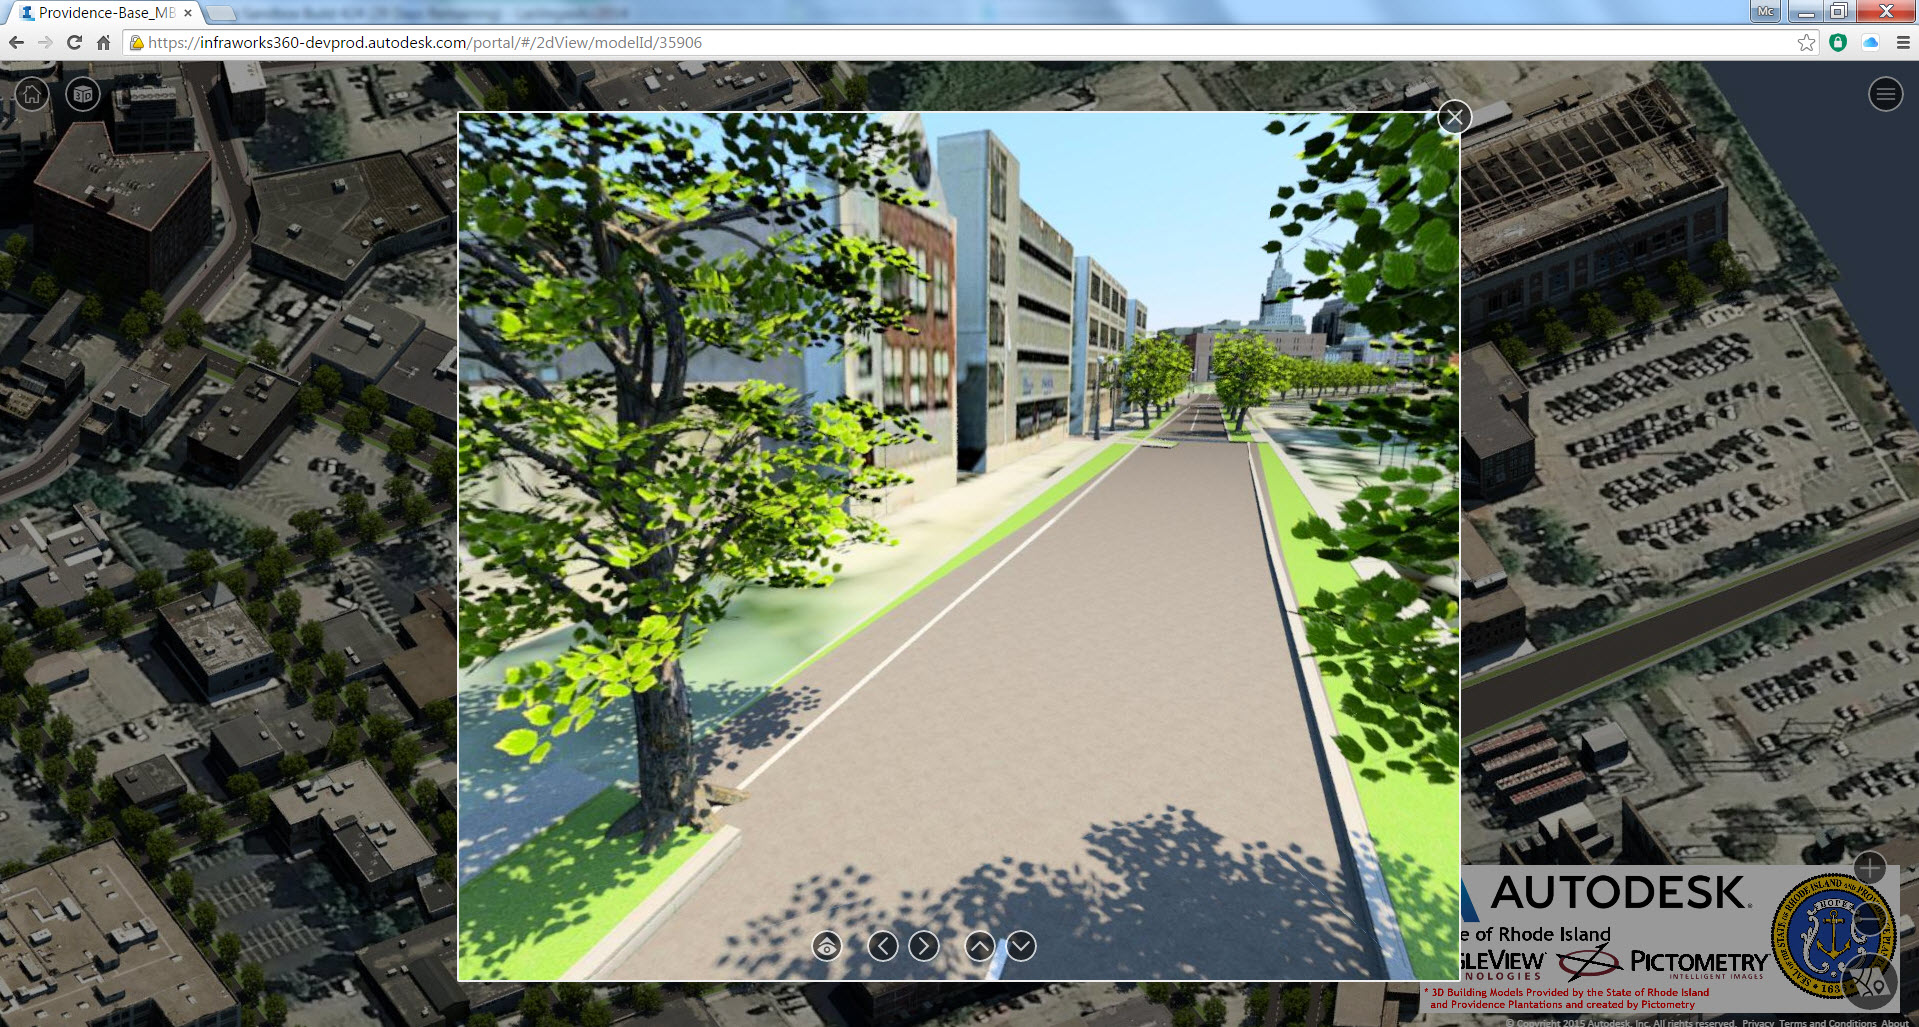 Infraworks-360-web-providence-1-3500-3500